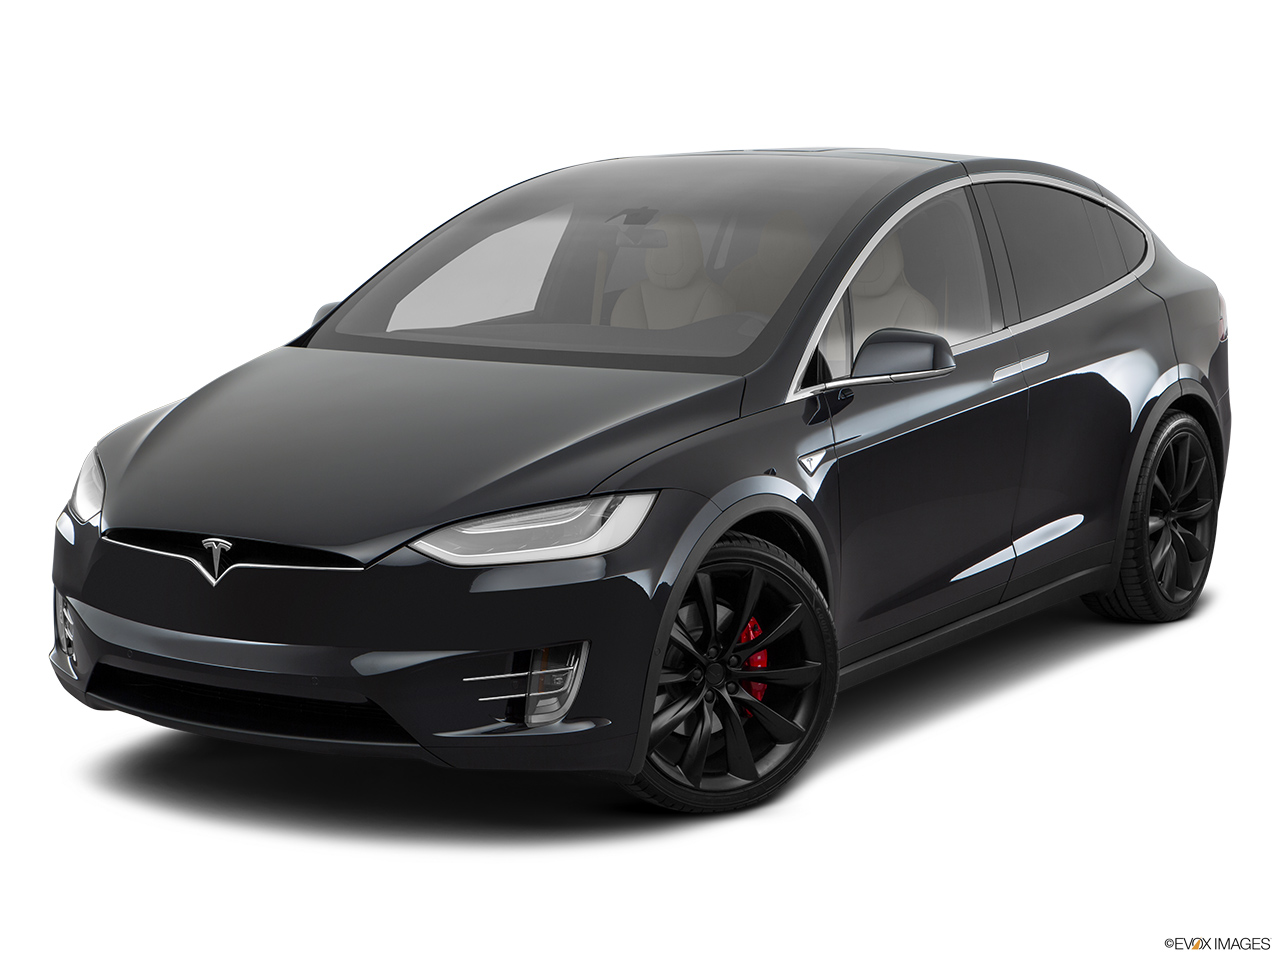 2018 Tesla Model X Prices in UAE, Gulf Specs & Reviews for ...